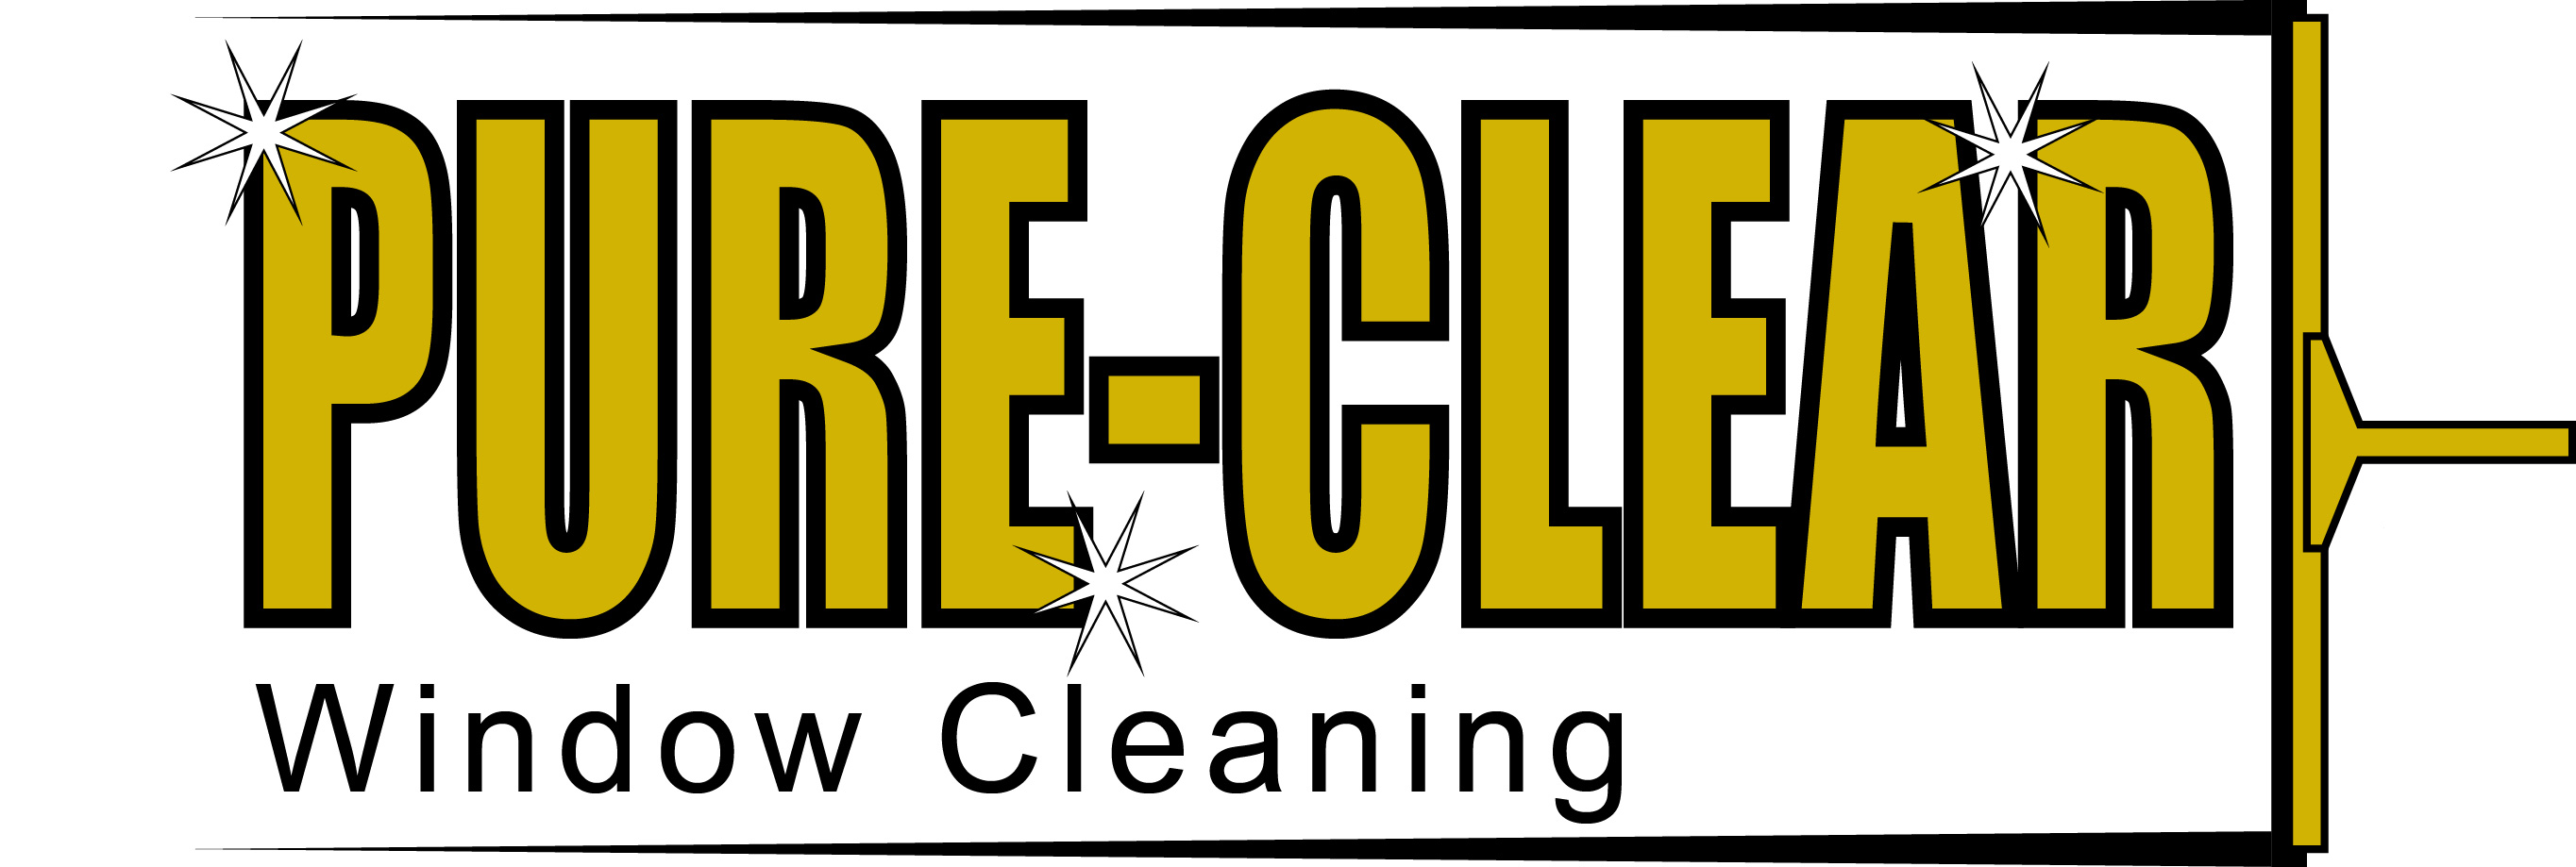 Pure-Clear Window Cleaning